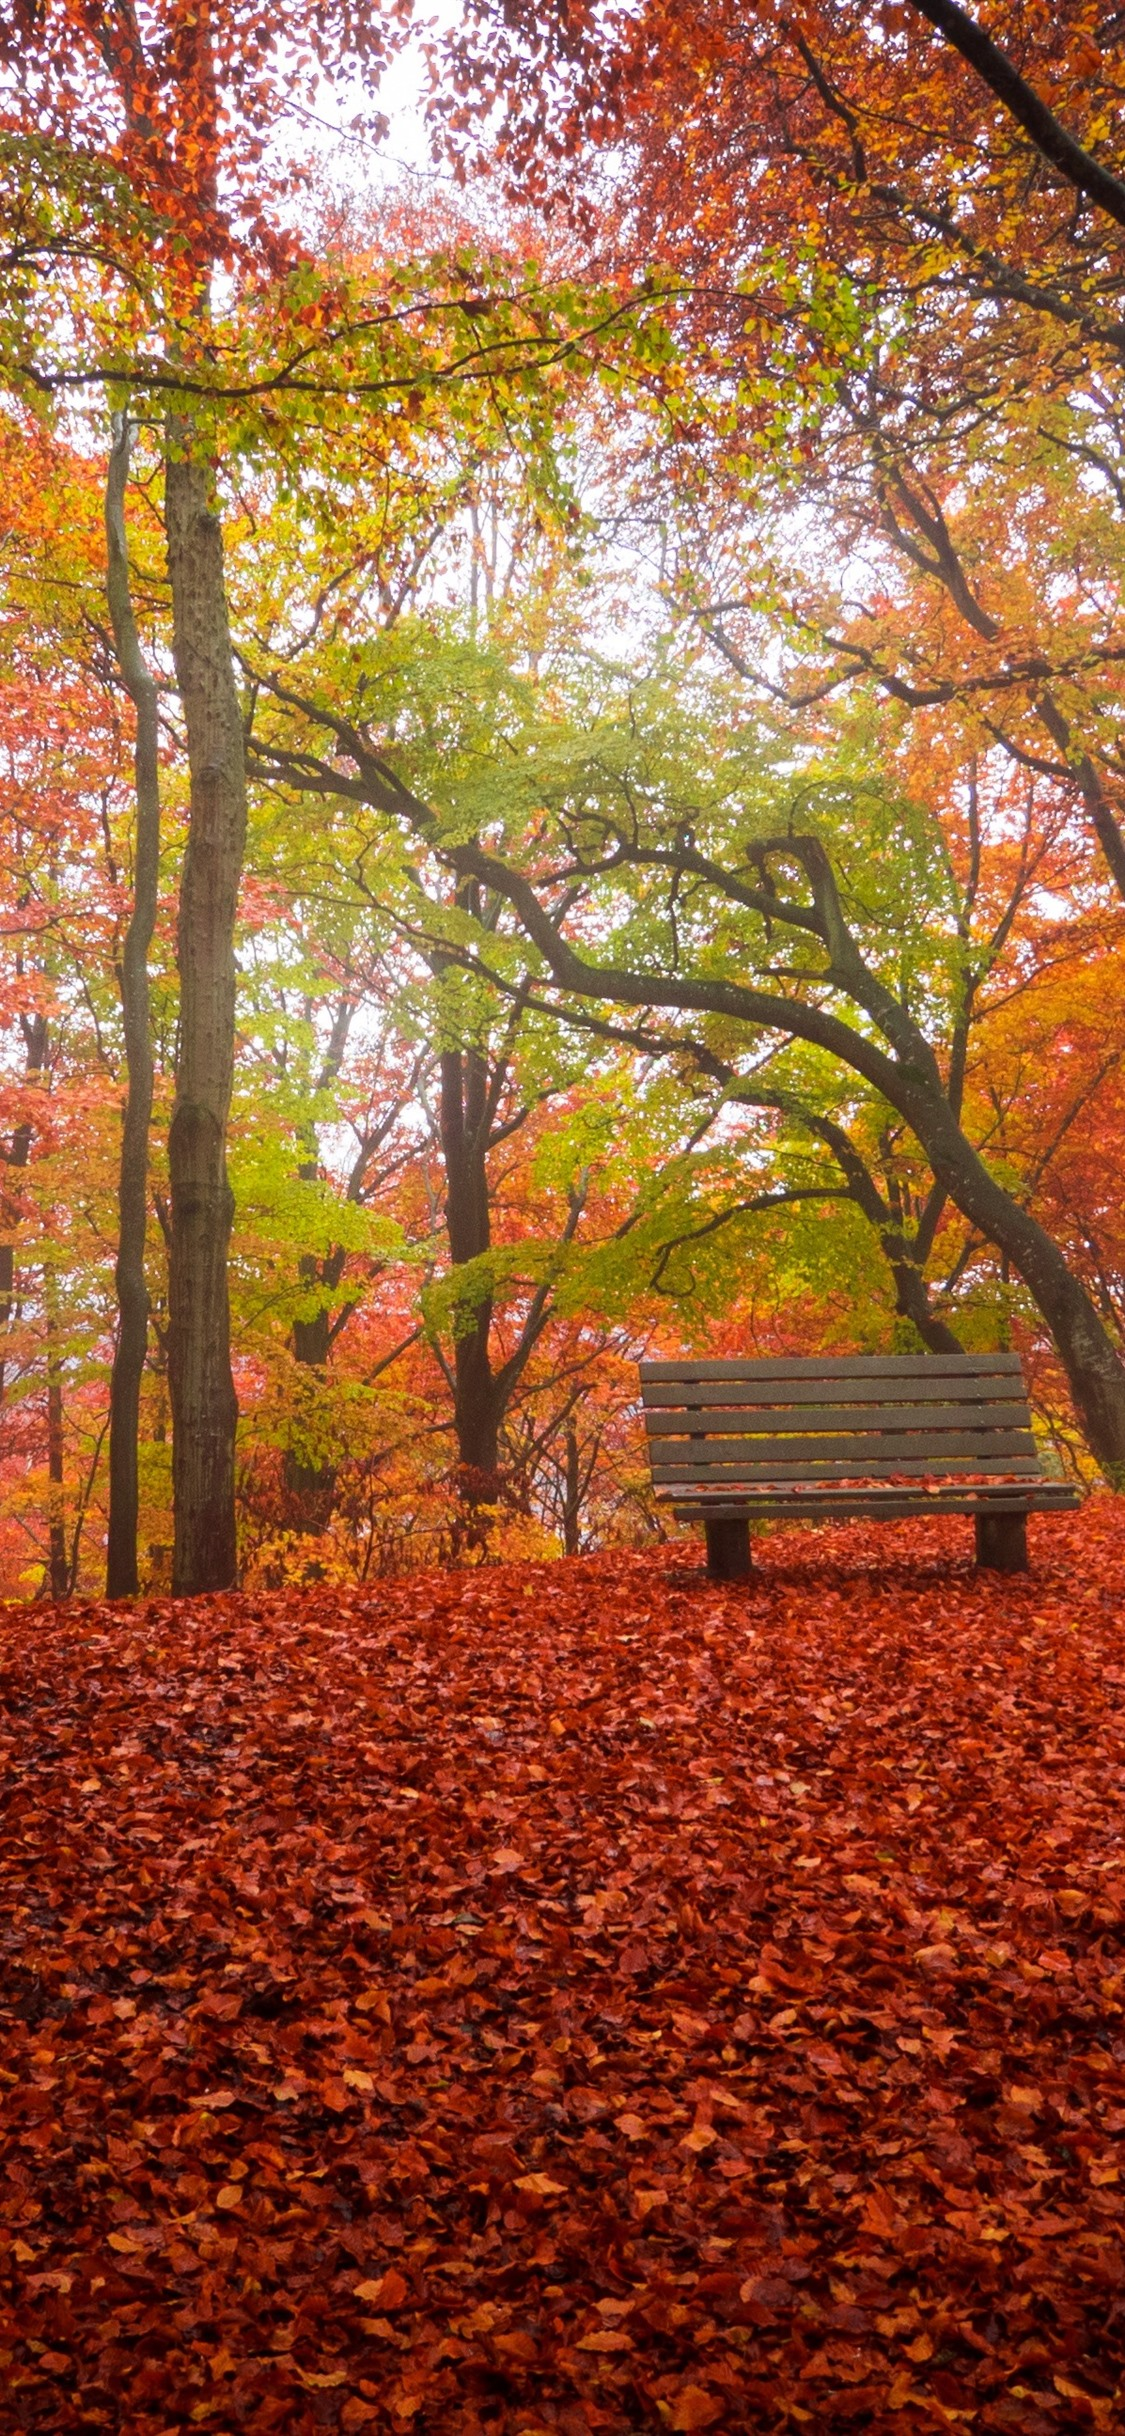 Autumn Trees Red Leaves Ground Bench Park 1125x2436